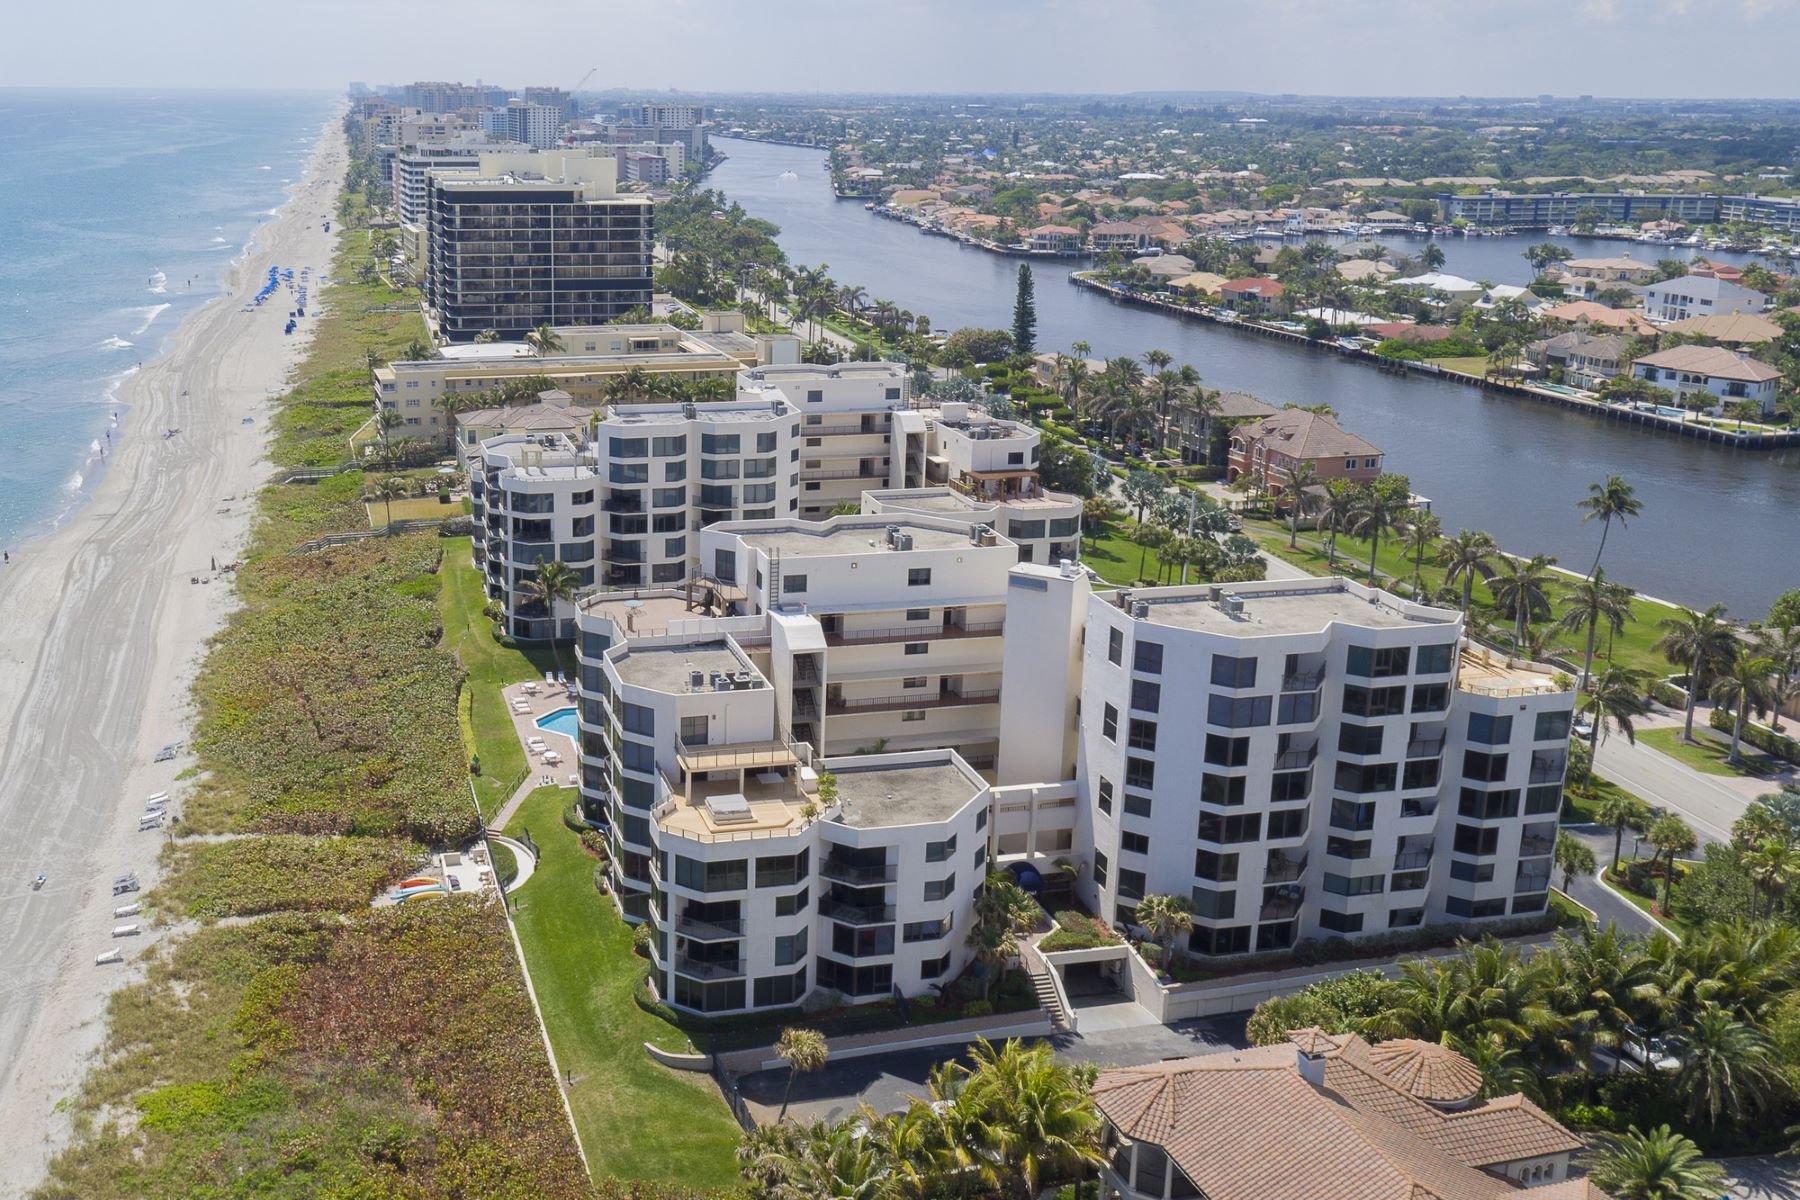 Townhouse for Active at 2565 S Ocean Blvd , 209n, Highland Beach, FL 33487 2565 S Ocean Blvd 209n Highland Beach, Florida 33487 United States